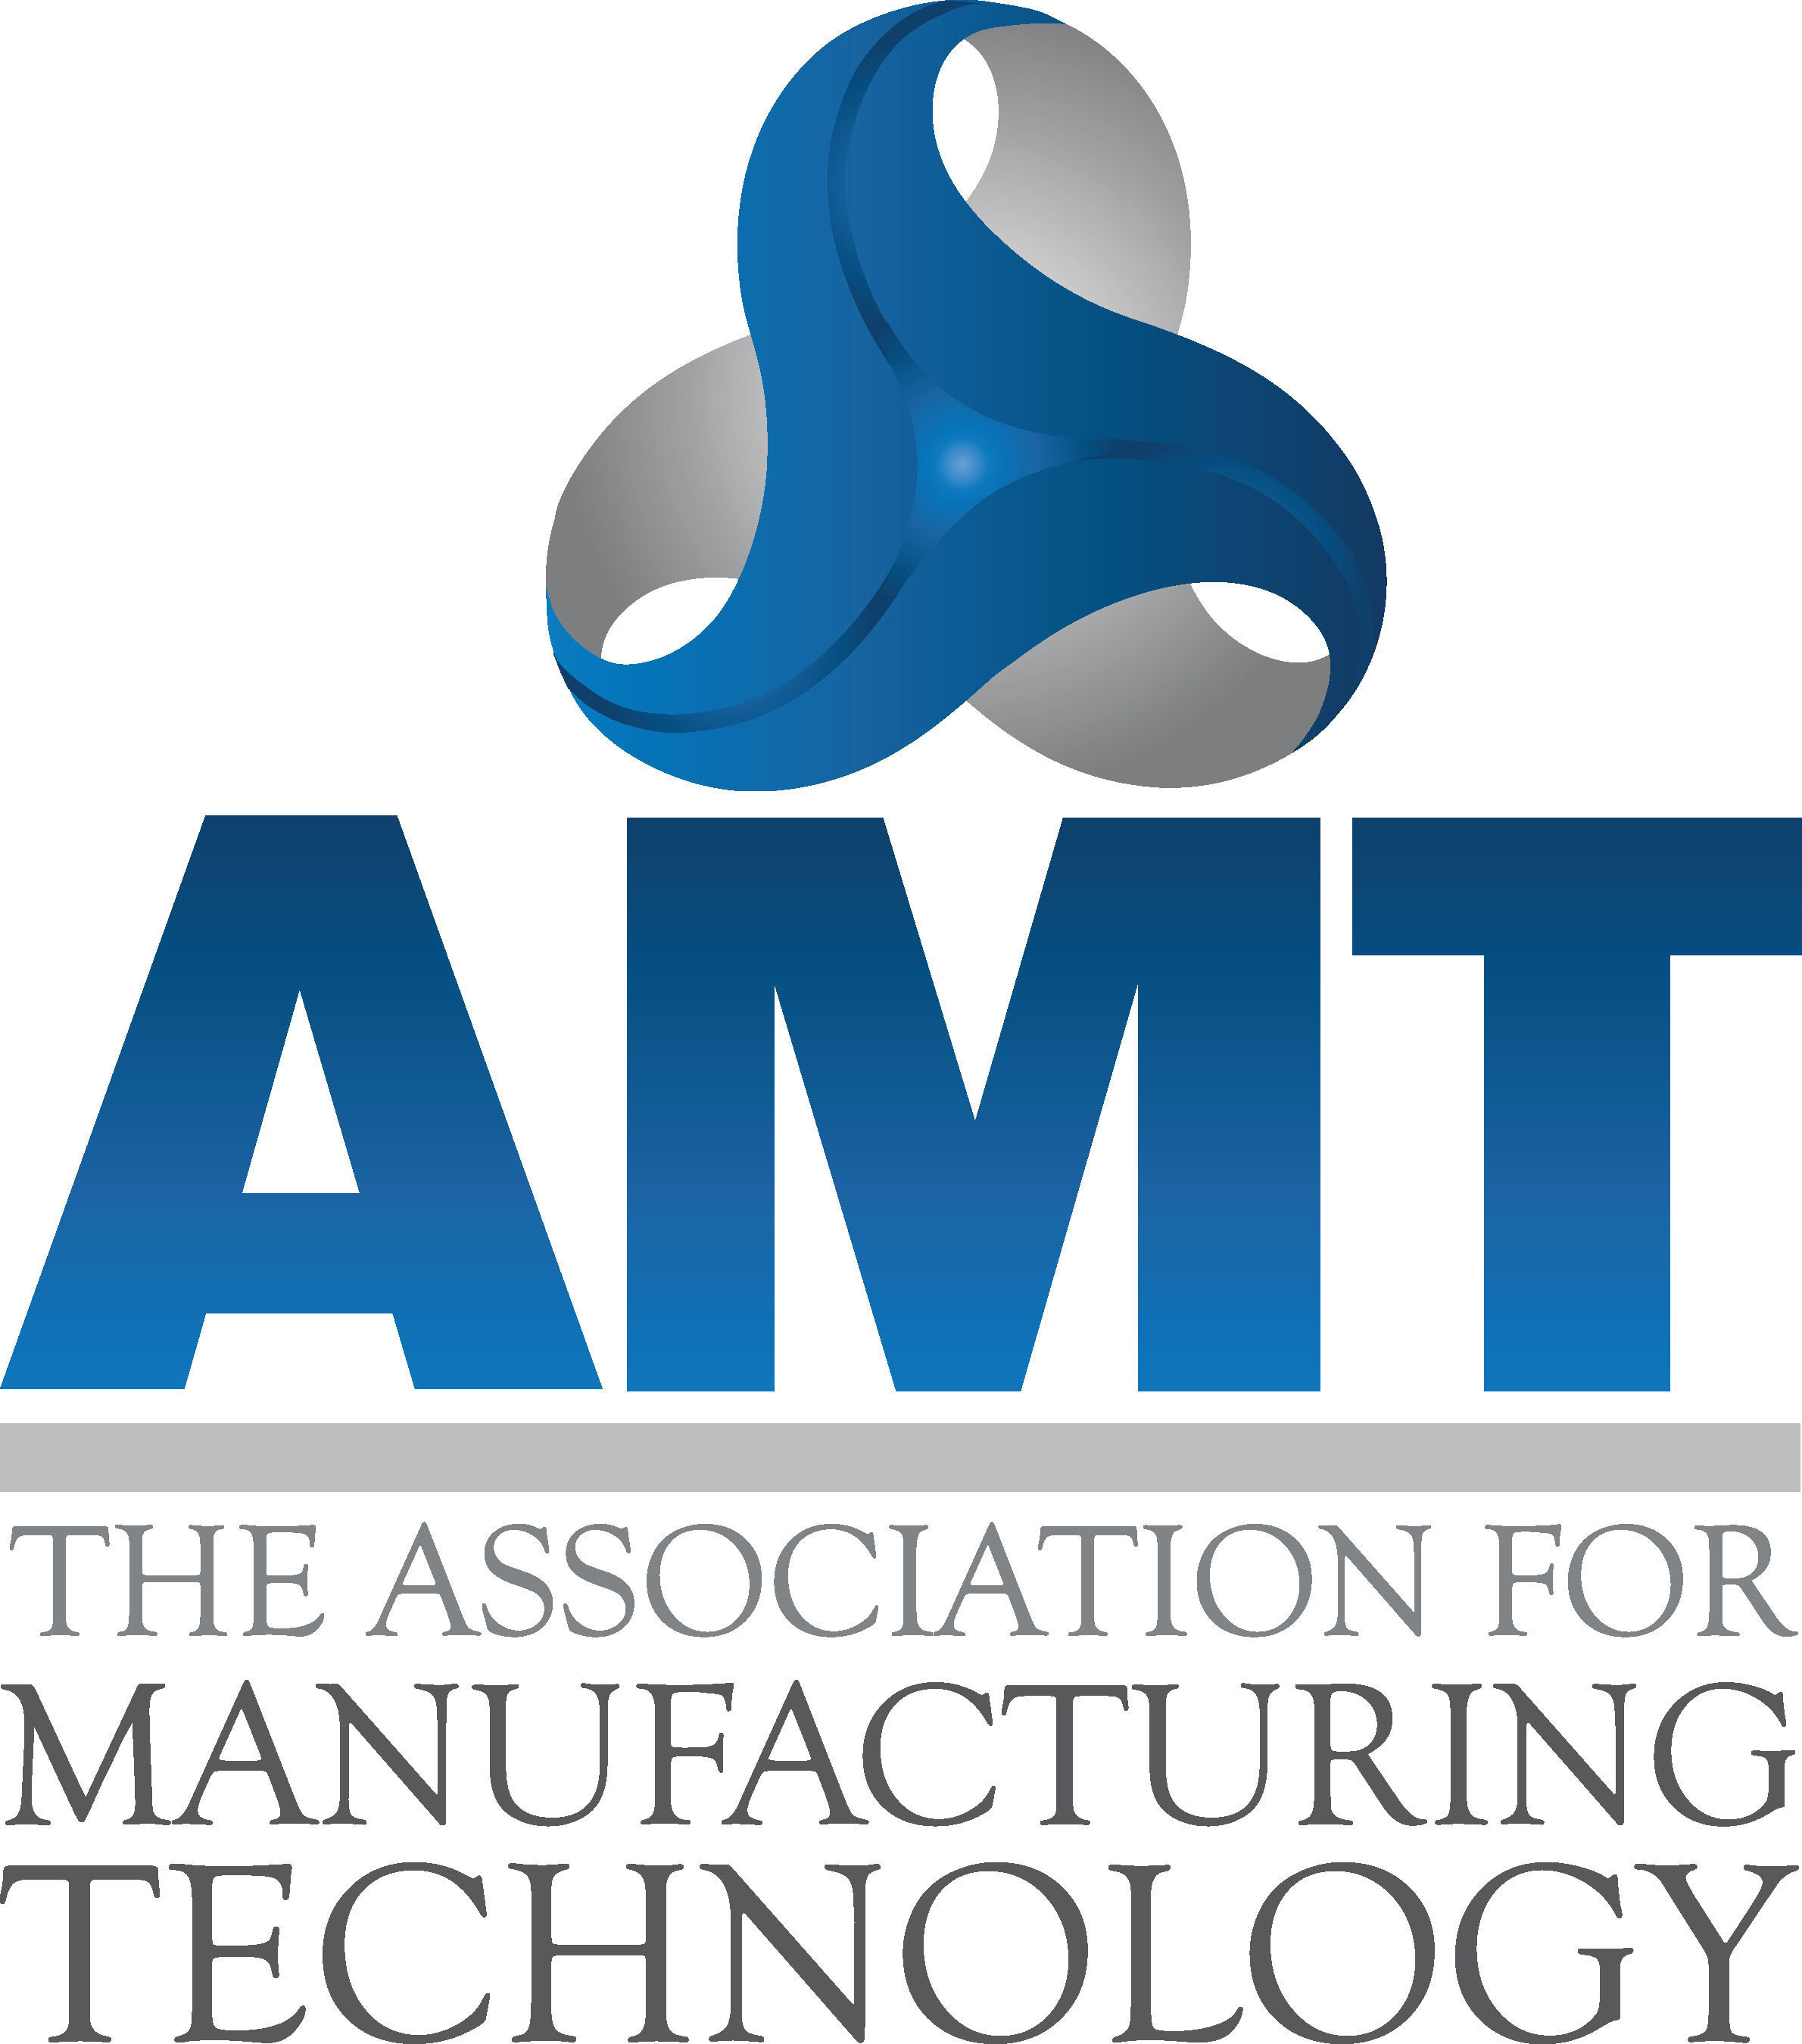 AMT provides programs and services that help manufacturing technology providers grow, plan for the future and improve their overall position in the global market. Founded in 1902 and based out of McLean, Virginia, the association works to strengthen the industry by providing business intelligence, improving market access and taking a leadership role in driving technological research and innovation. AMT owns and manages The International Manufacturing Technology Show (IMTS), which draws over 114,000 attendees and is North America's largest showcase for manufacturing technology. For more information on AMT or how to become a member, visit amtonline.org, or connect with us on Twitter via @amtonline or Facebook at http://www.facebook.com/amtnews.